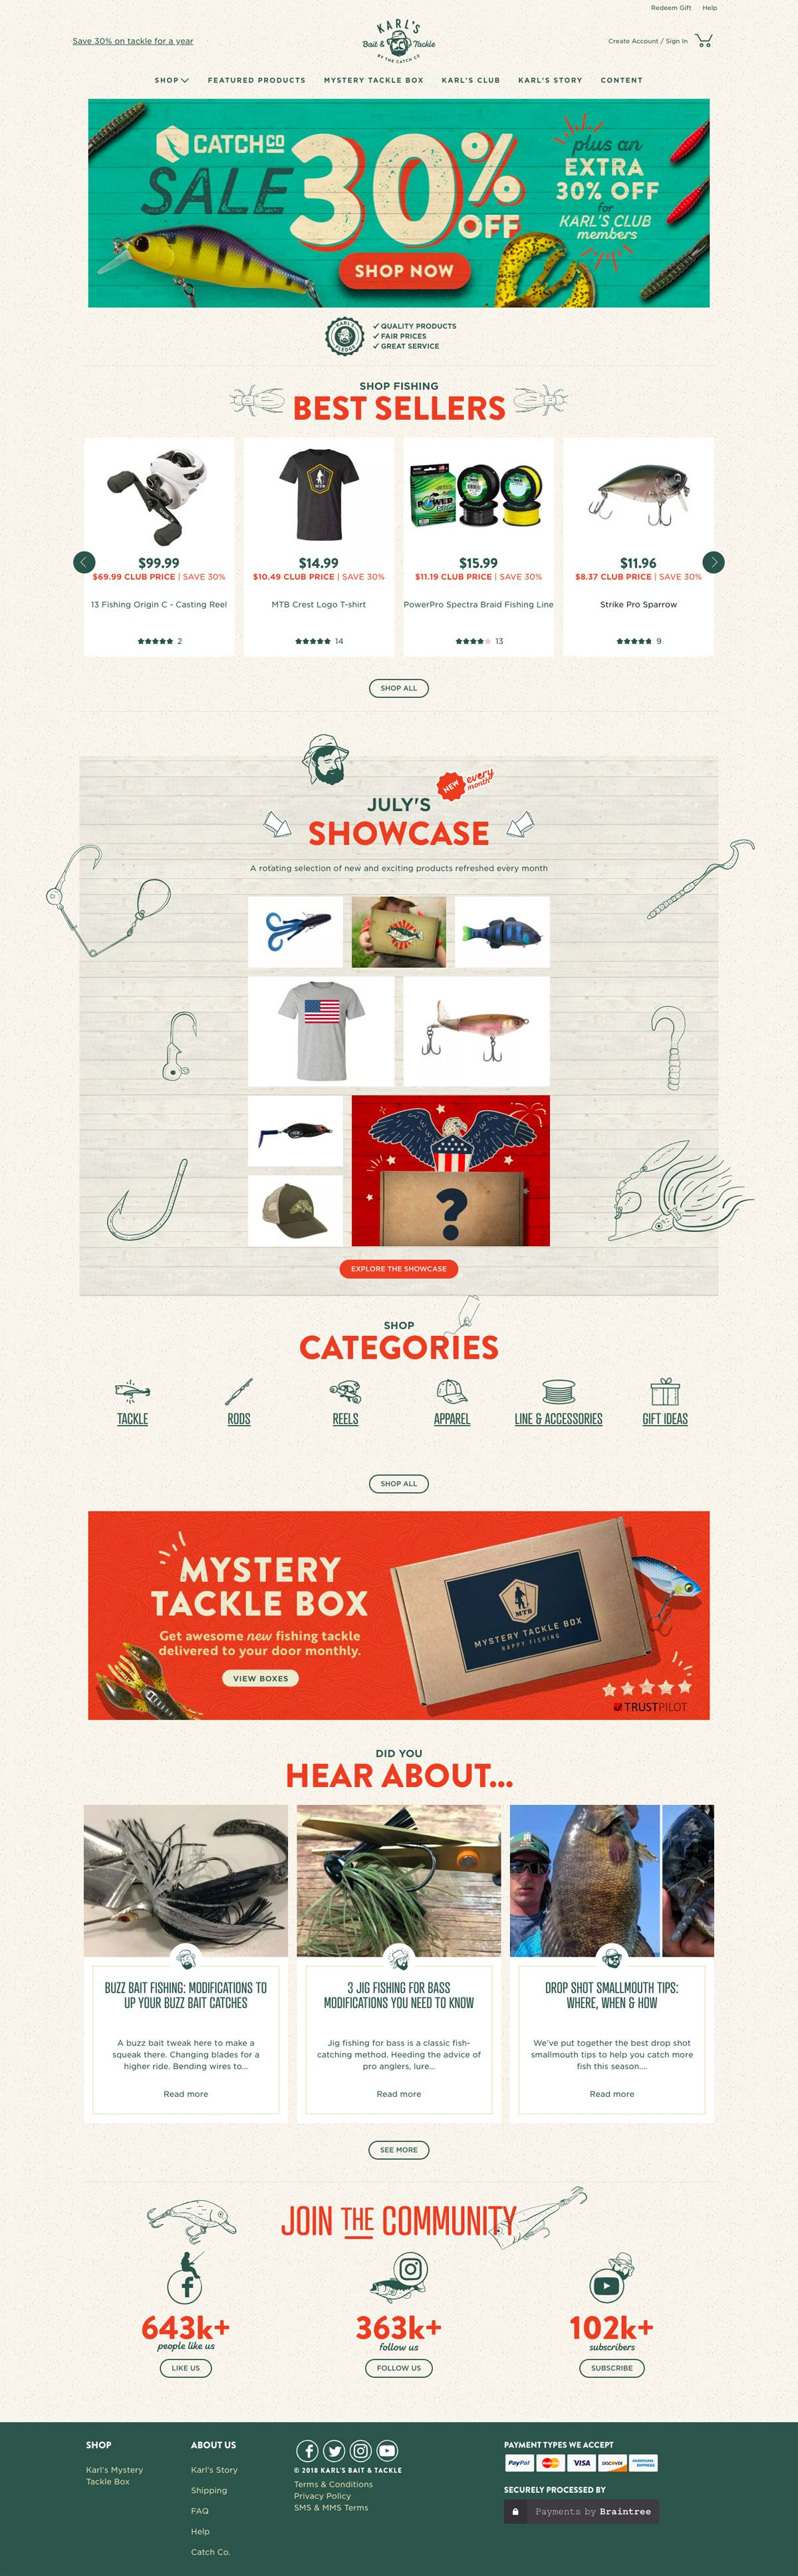 eCommerce website: Karl's Mystery Tackle Box